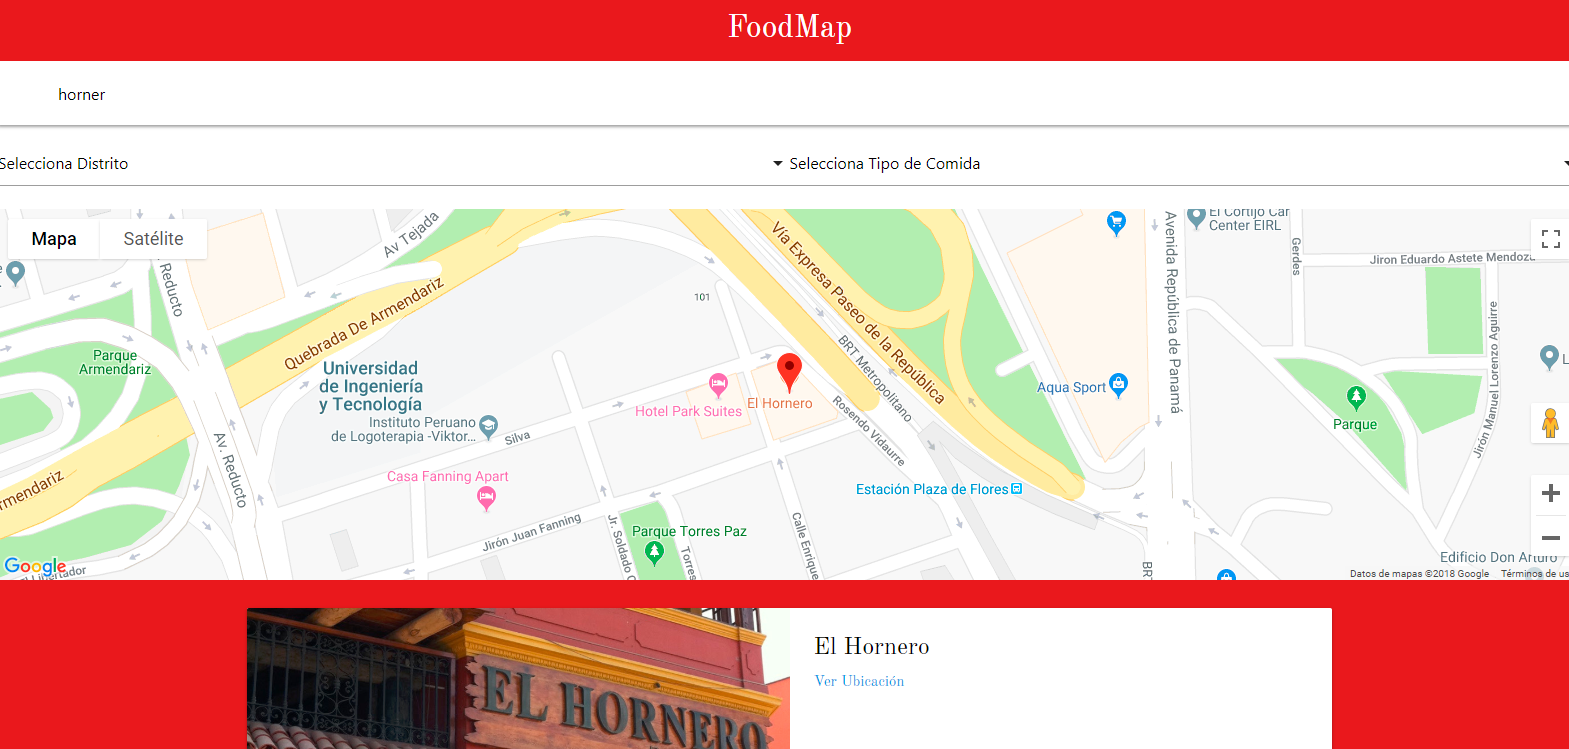 Favorite FoodMap